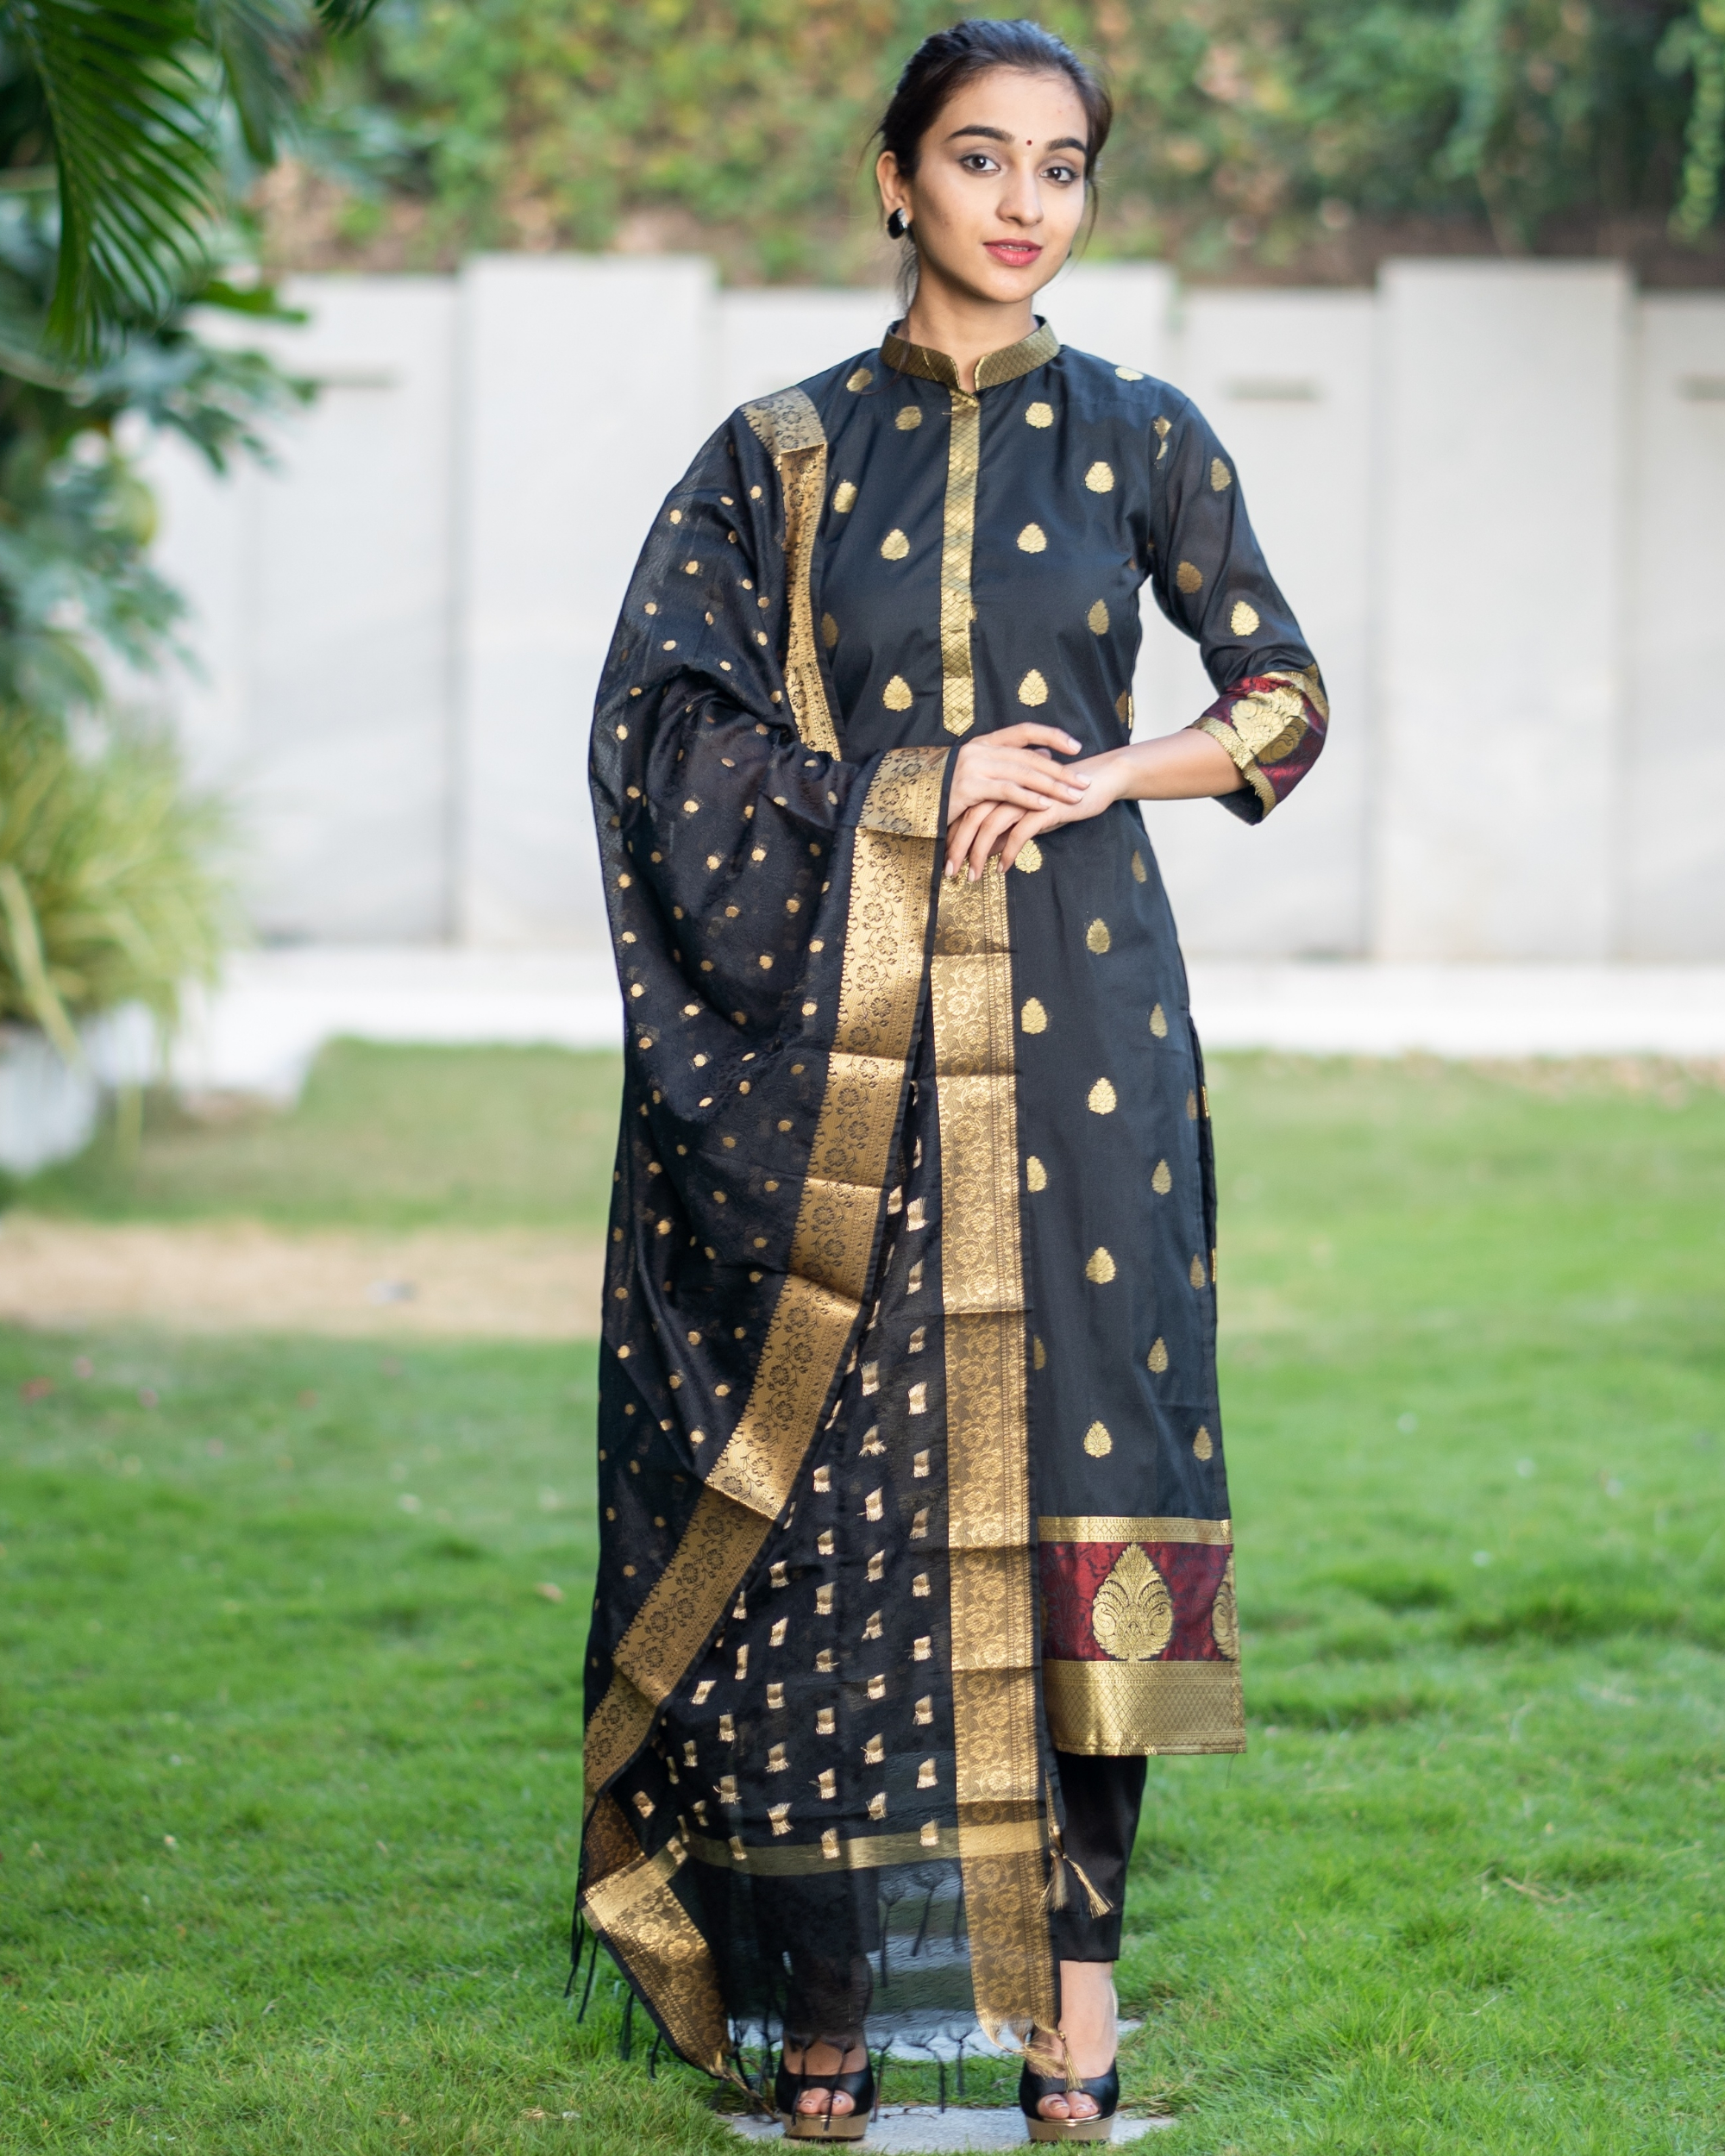 Black and Gold Motifs Suit Set with Dupatta - Set of Three